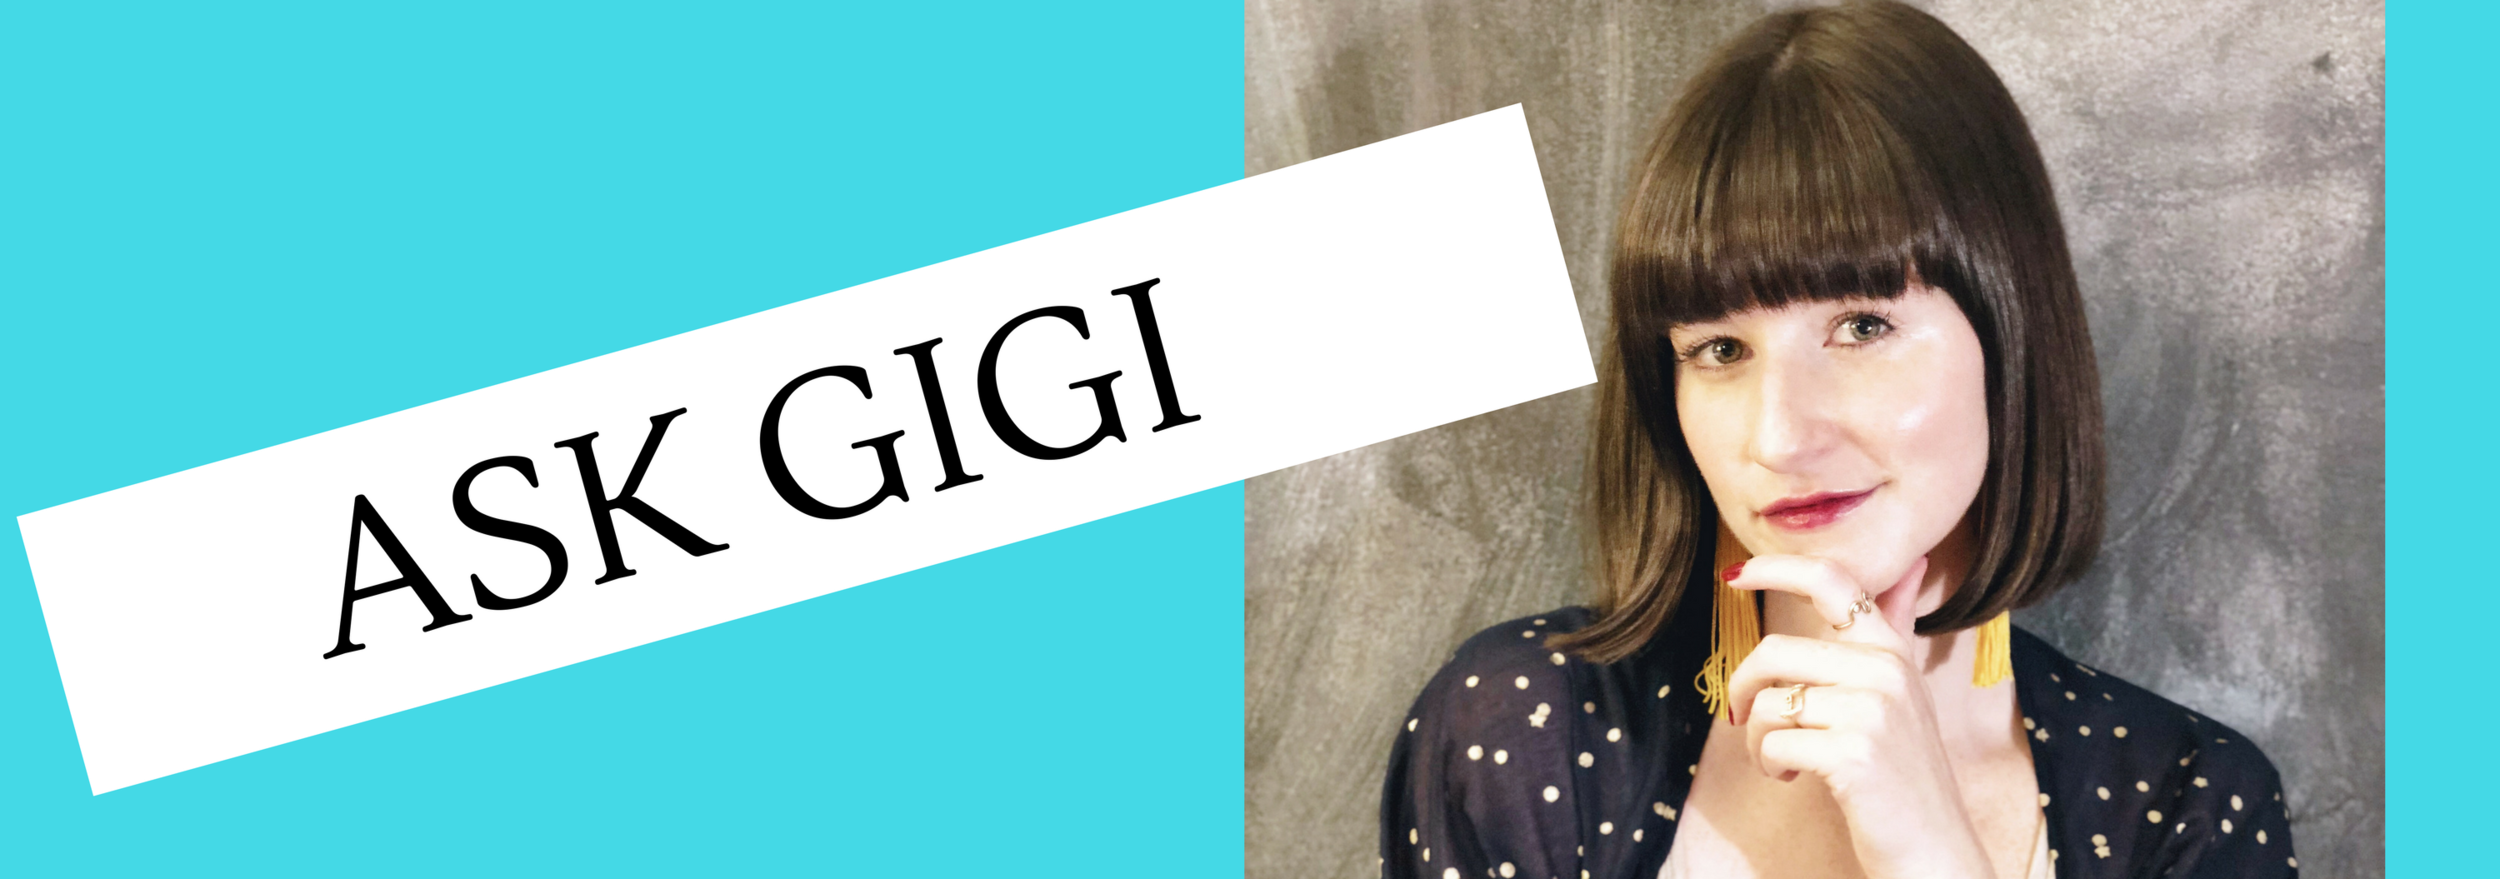 Ask Gigi_ Site Banner.png